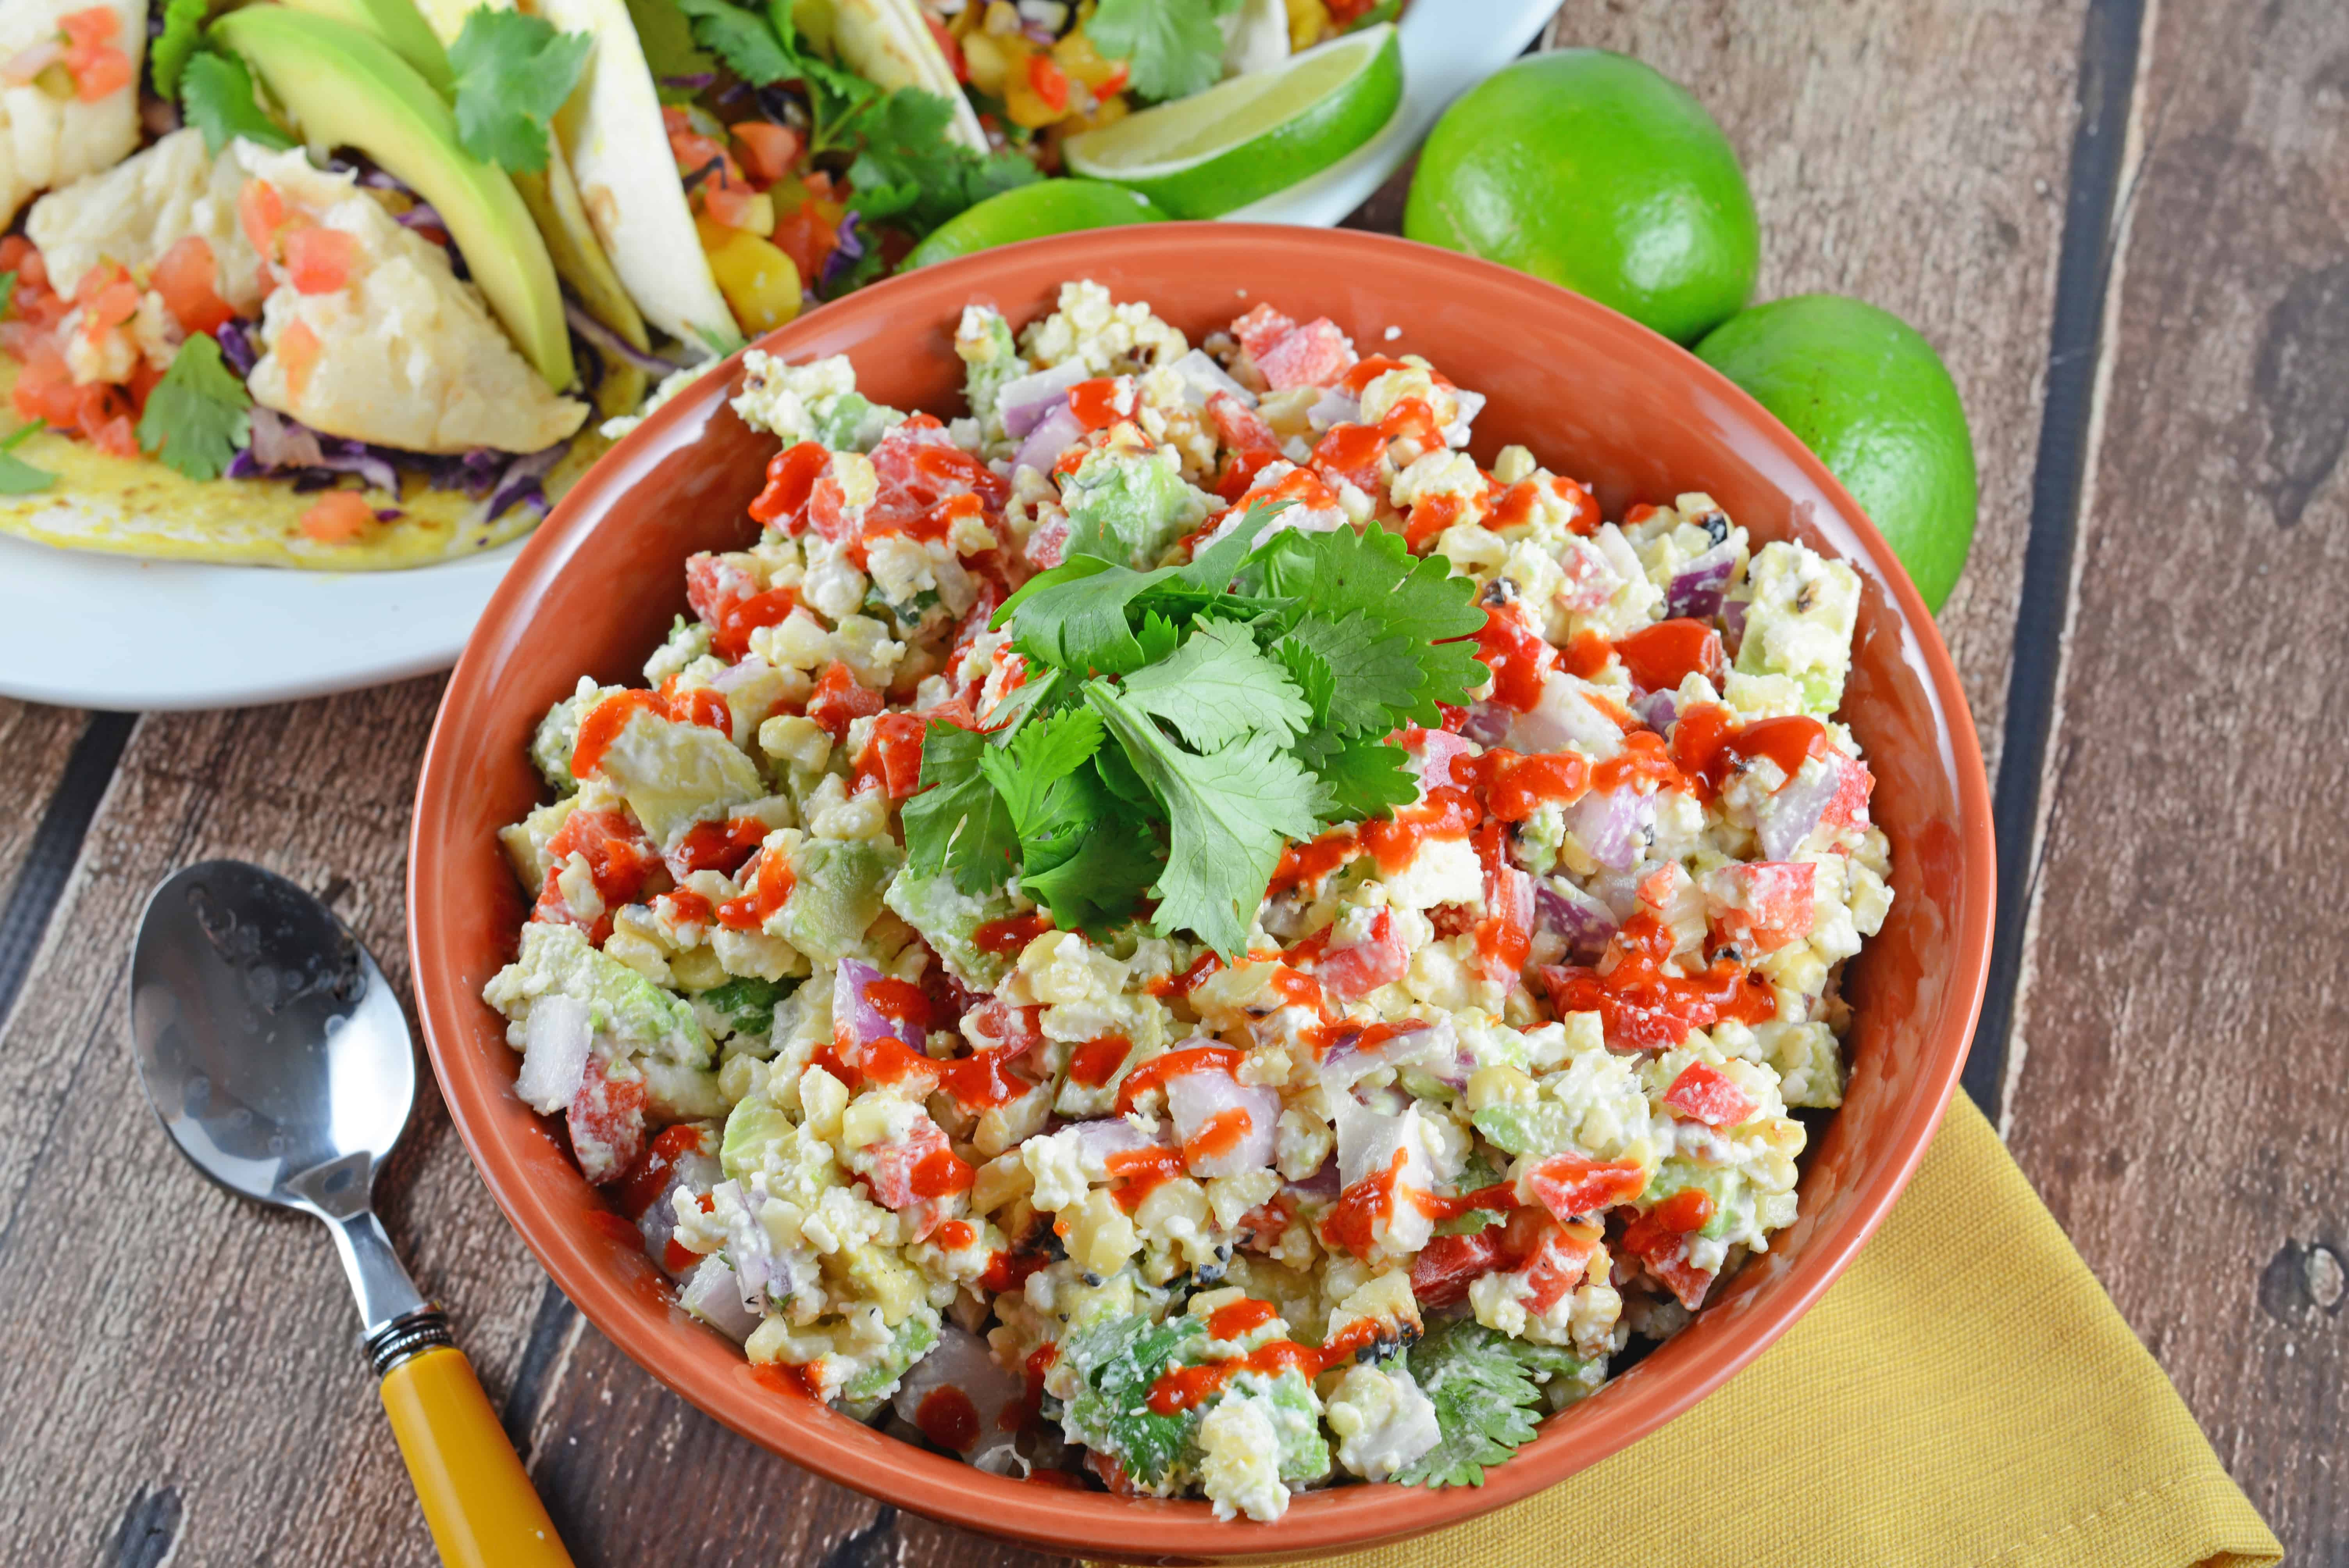 Mexican Corn Salad Recipe - Traditional Mexican street corn is turned into the best salad ever. Lime, Mexican cheese with avocado, red onions and crema mexicana. It's so good, just grab a spoon! www.savoryexperiments.com